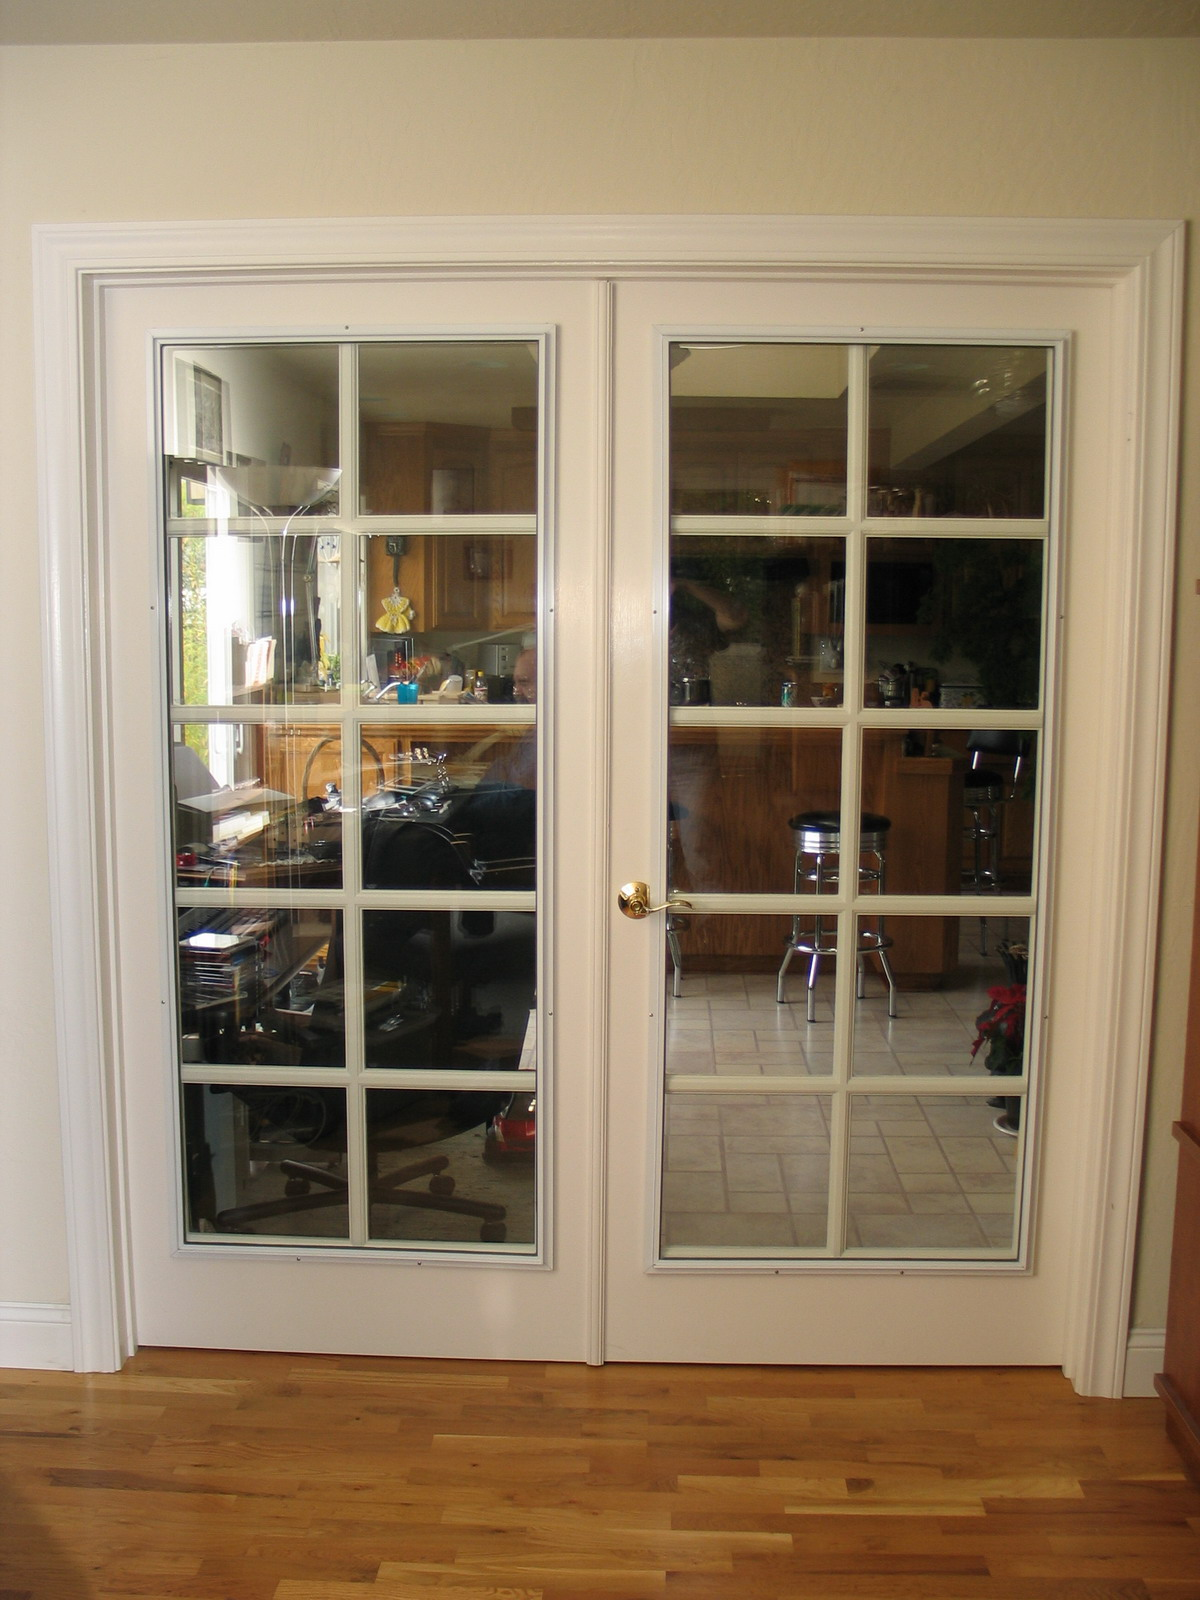 Interior door panels soundproof windows inc soundproofing glass panel mounted on an interior french door planetlyrics Image collections